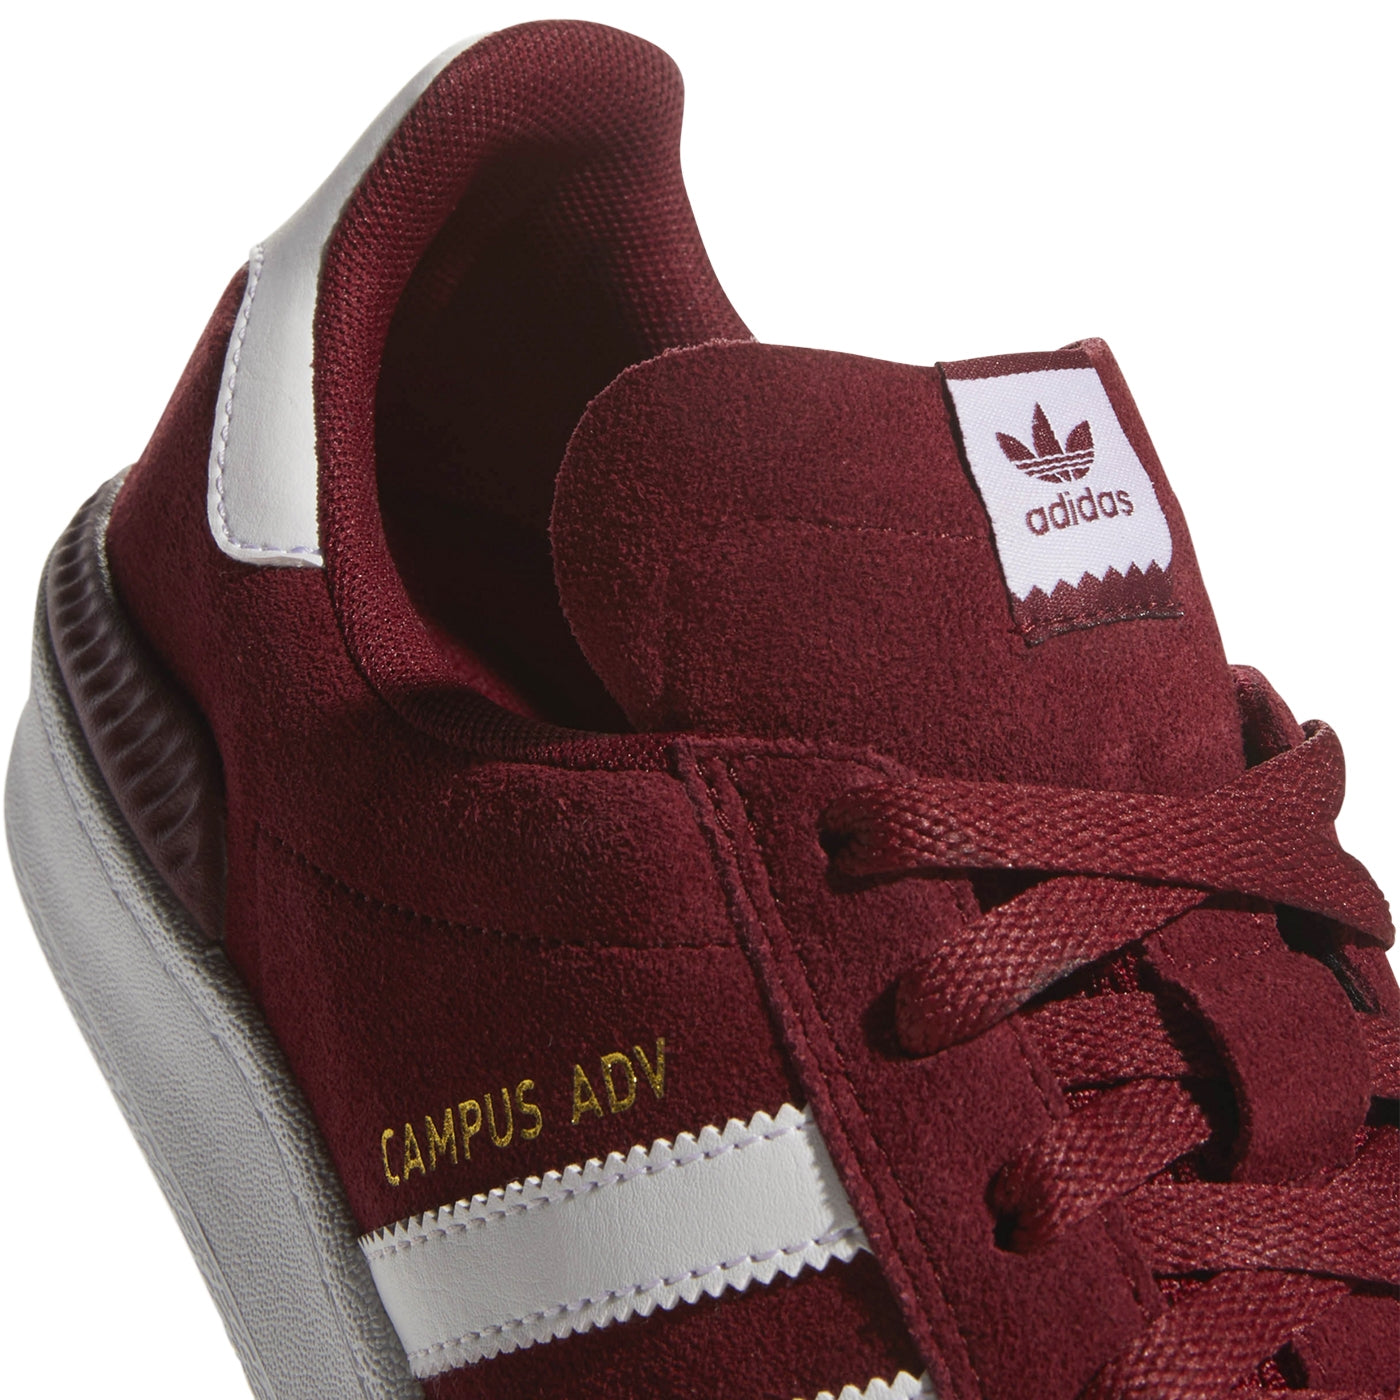 cc51f0cd8f5 Adidas Campus ADV Shoes - Collegiate Burgundy   Footwear White   Footwear  White. Size Charts